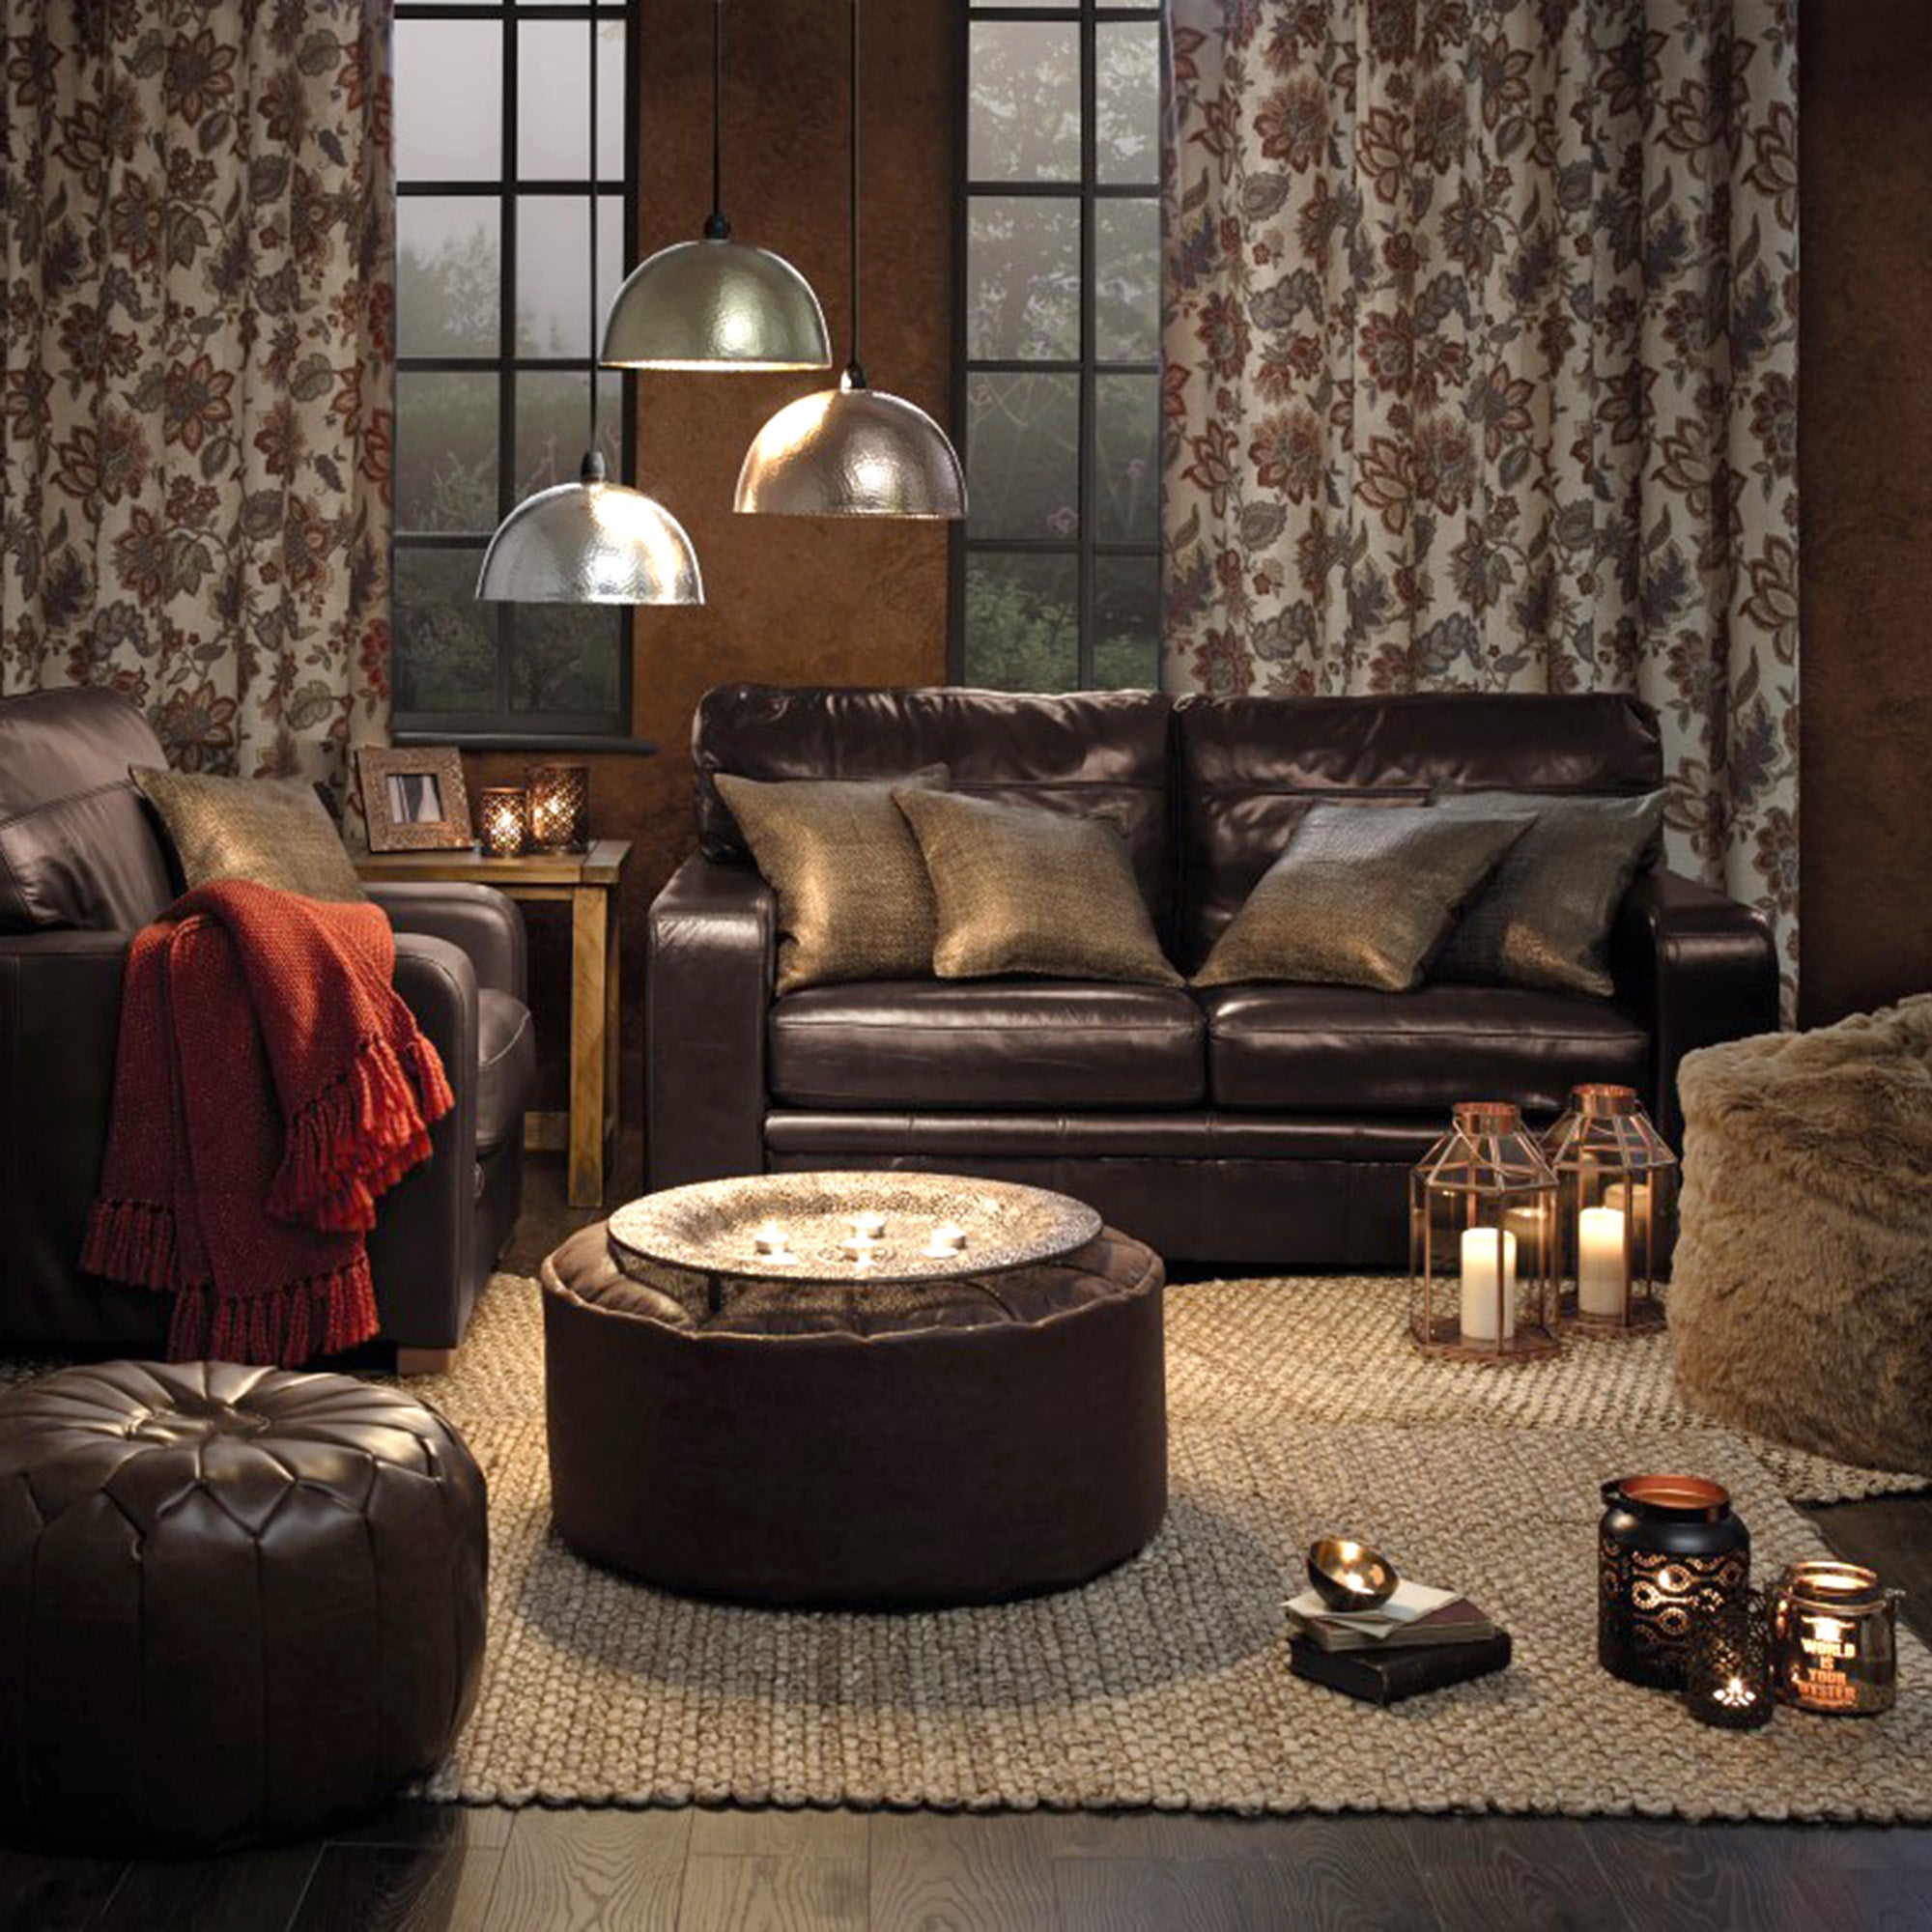 Global Luxury Home Decor Collection